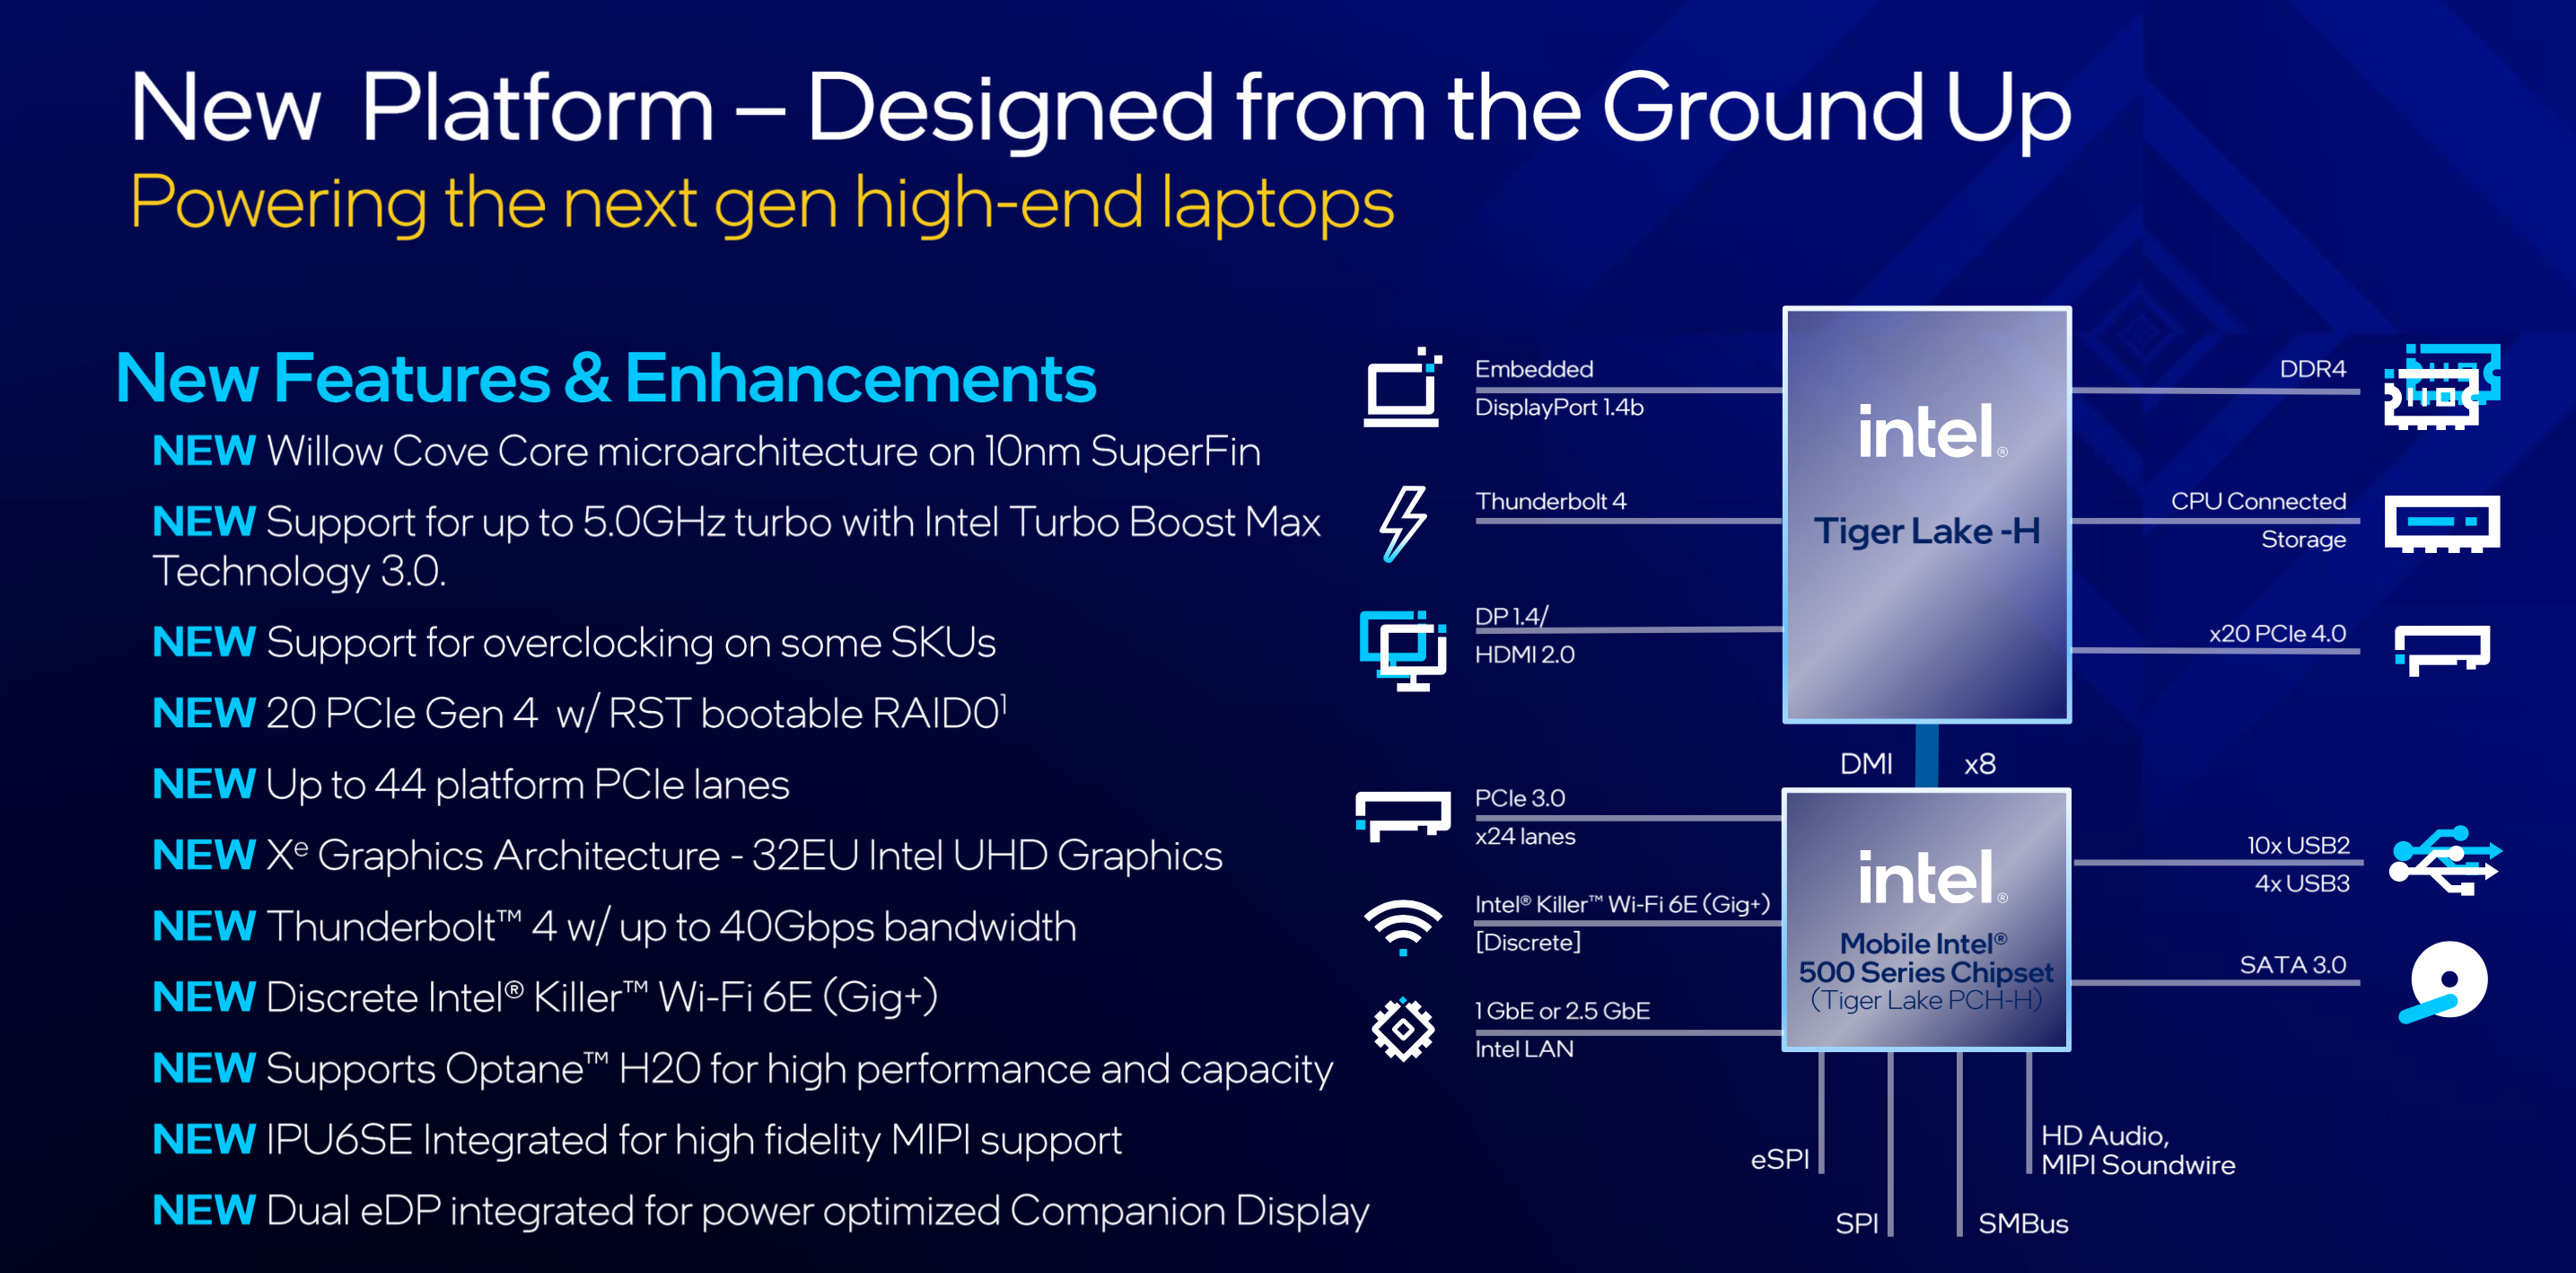 Intel Tiger Lake H-series processors' key features